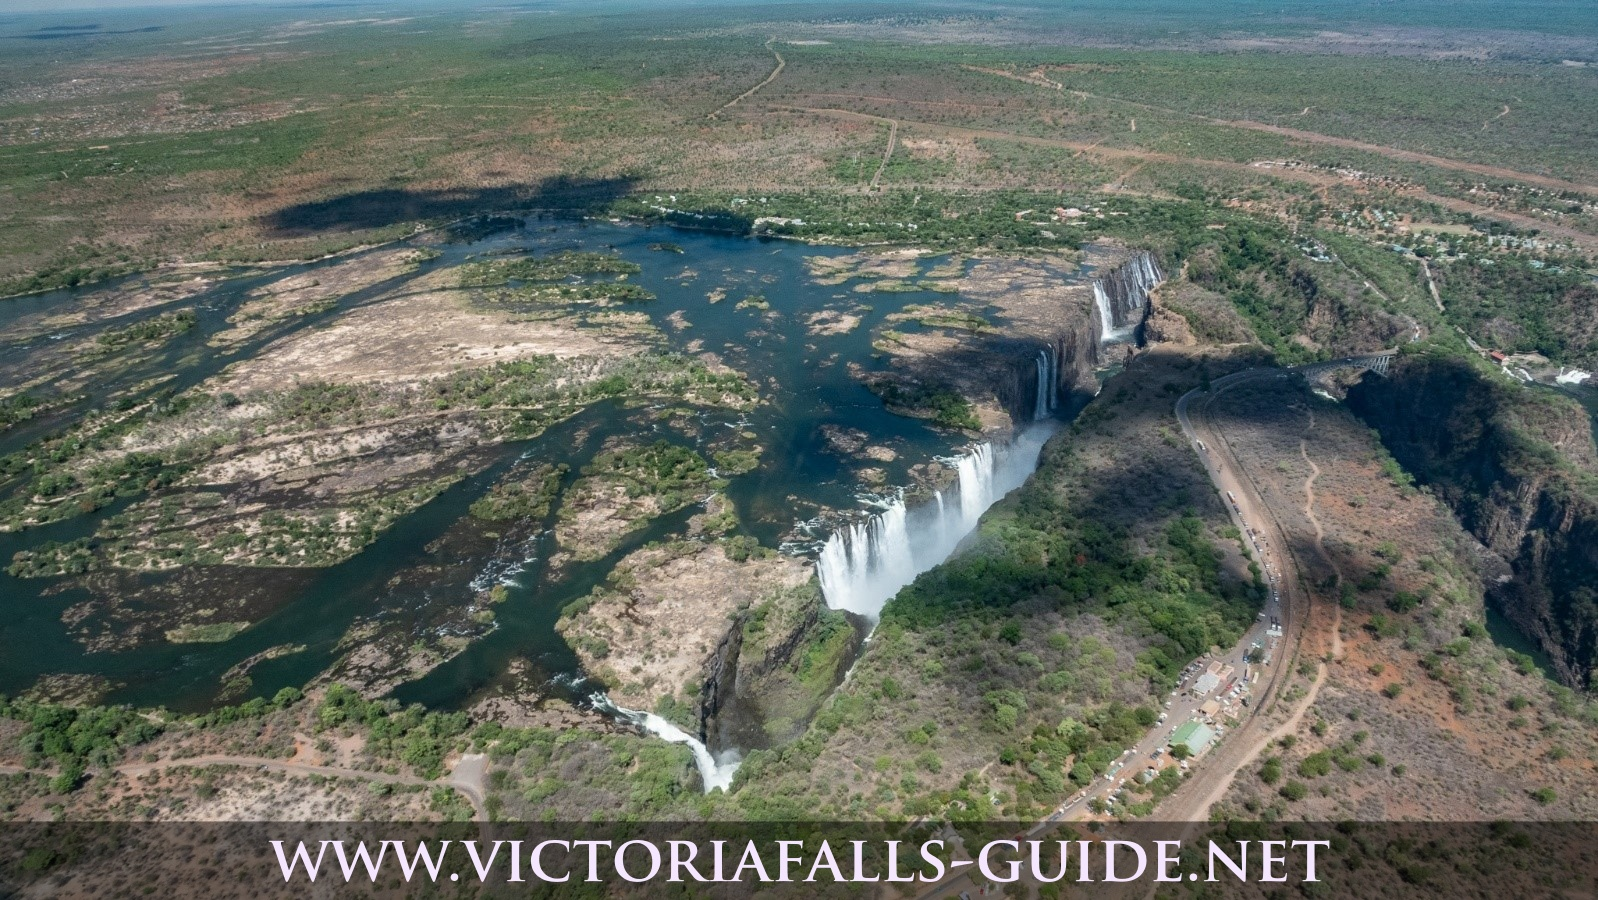 Aerial picture of the Victoria Falls taken 19 November 2019